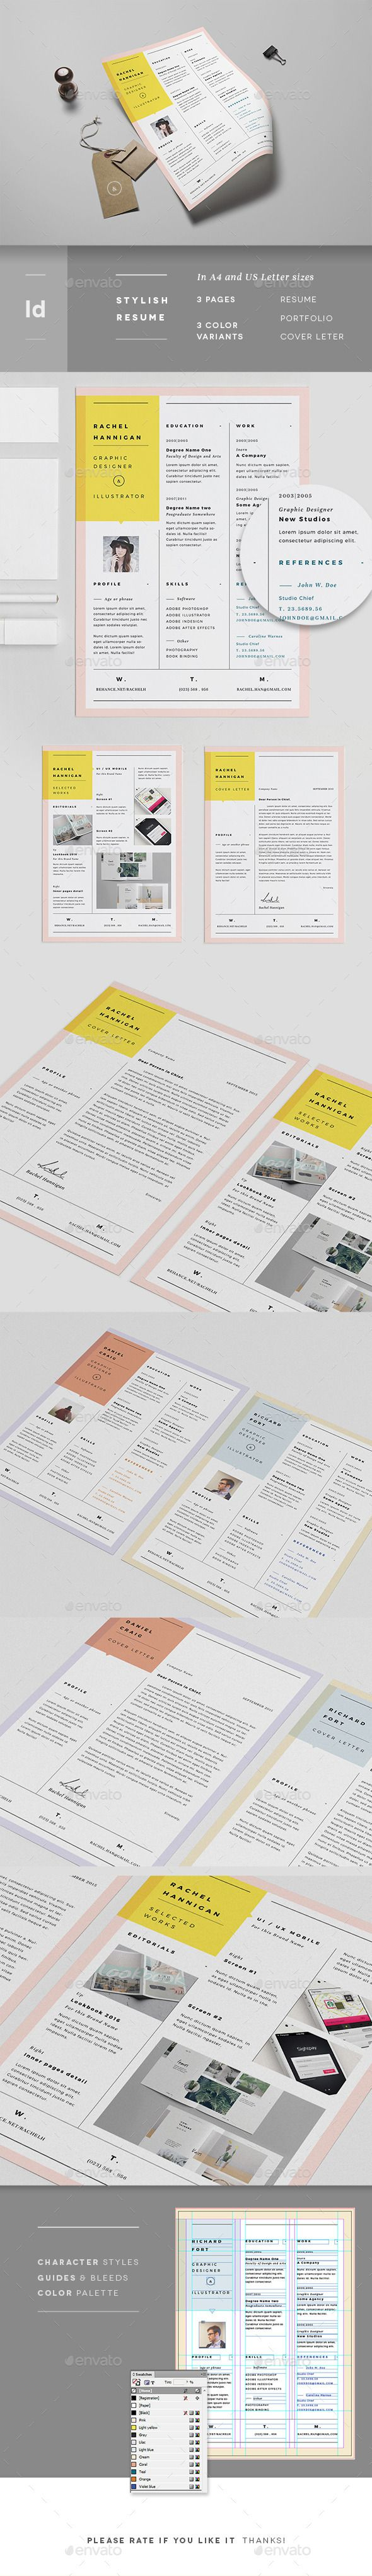 3 Pages Minimal Resume Portfolio & Letter  - InDesign Template • Only available here ➝ http://graphicriver.net/item/3-pages-minimal-resume-portfolio-letter/11408875?ref=pxcr